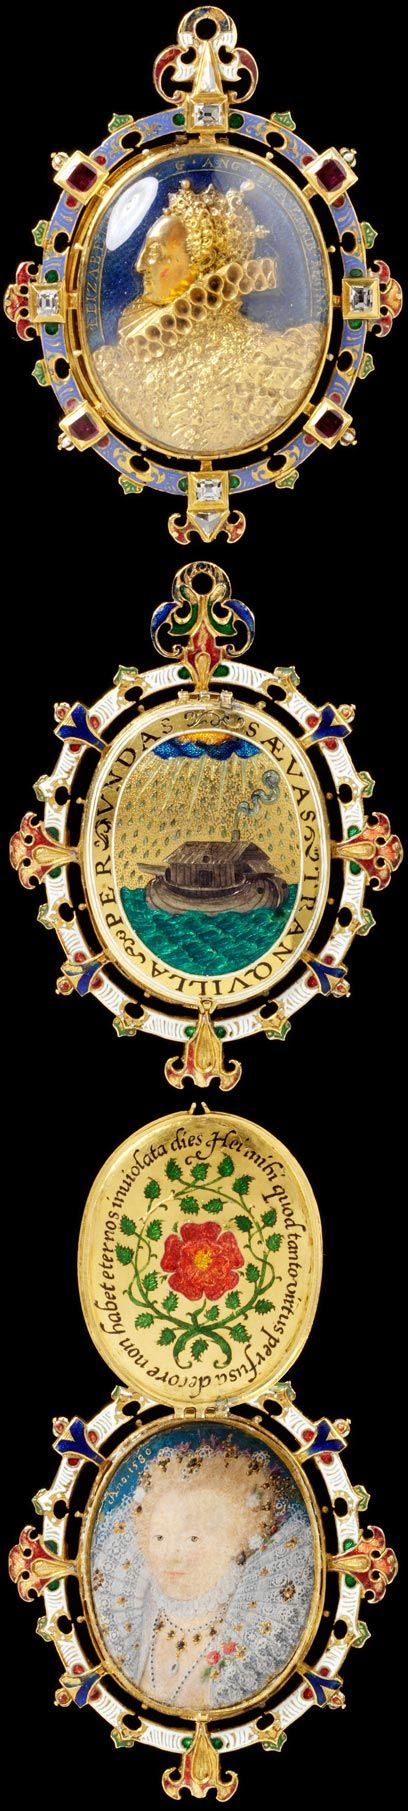 "'The Heneage Jewel'  [locket]  Also called 'The Armada Jewel'  --  1595  --  Painting by Nicholas Hilliard.  ""Elizabeth I is said to have given this jewel to Sir Thomas Heneage, a Privy Counsellor  the Vice-Chamberlain of the Royal Household.  Via The Victoria  Albert Museum."